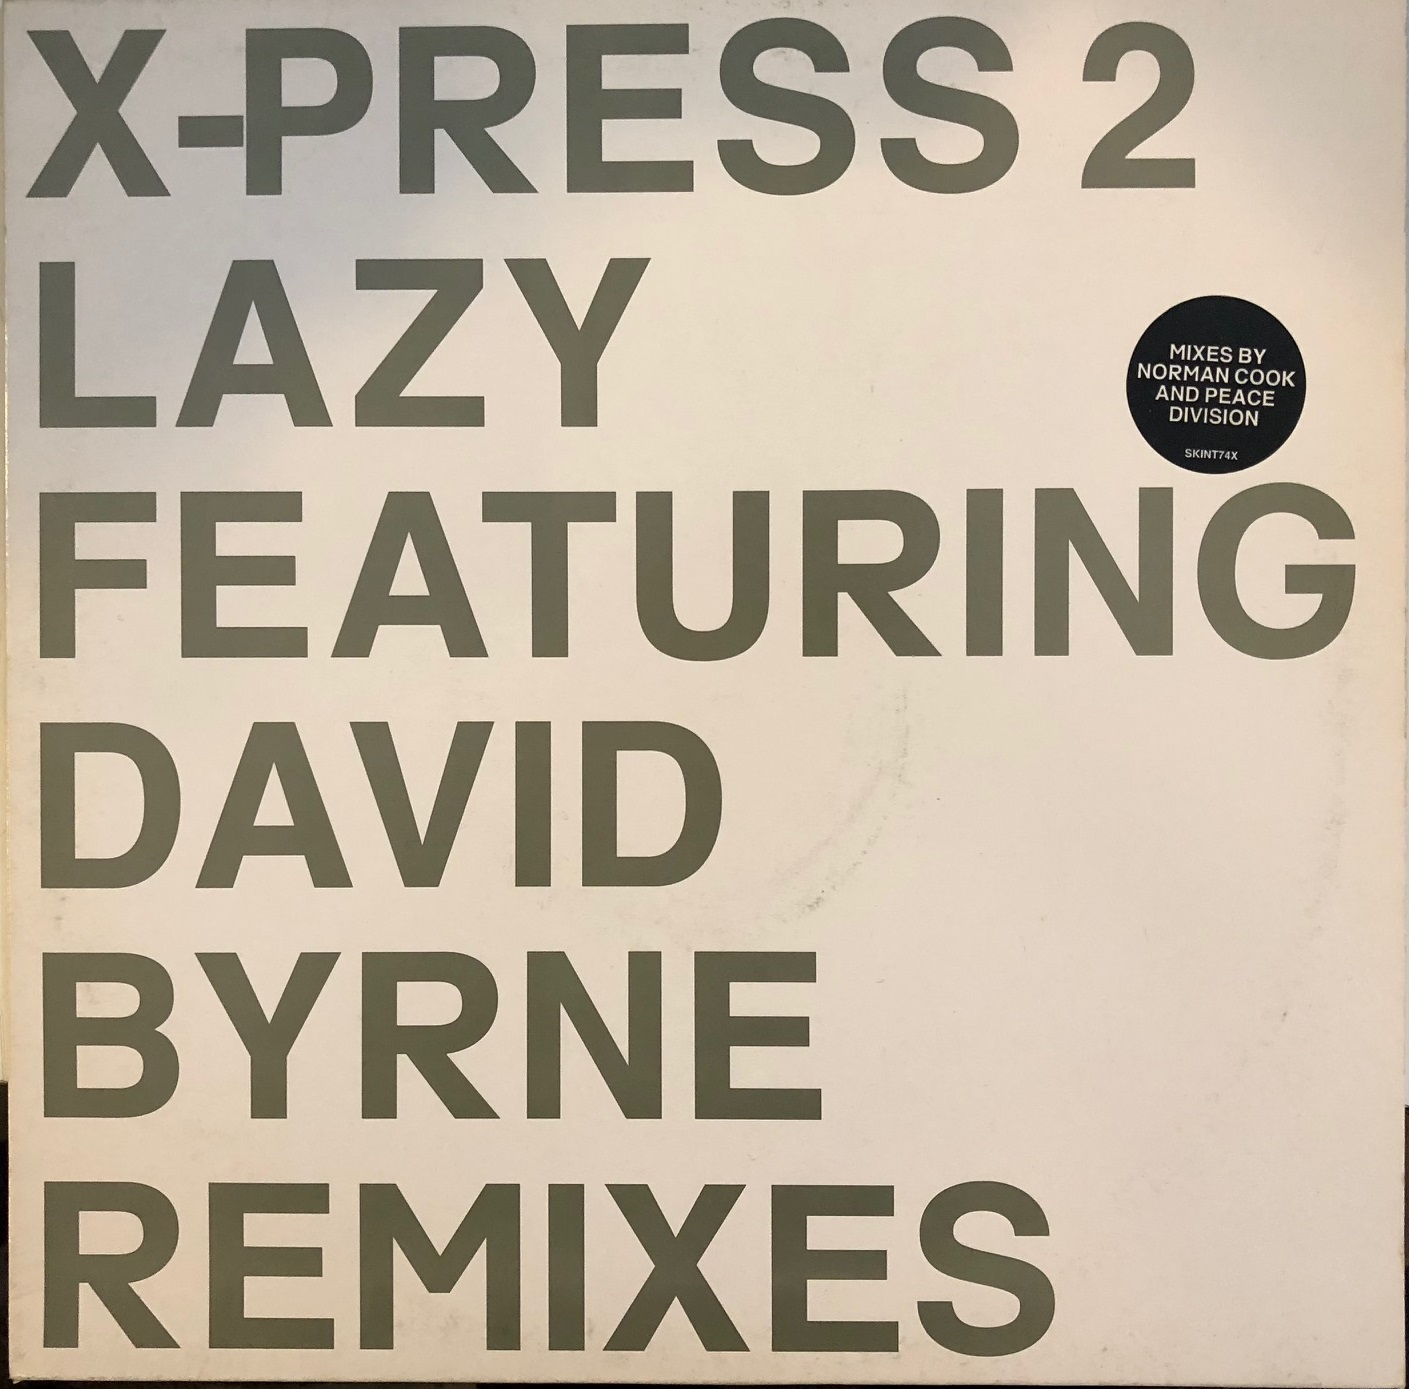 X-PRESS 2 /LAZY feat DAVID BYRNE